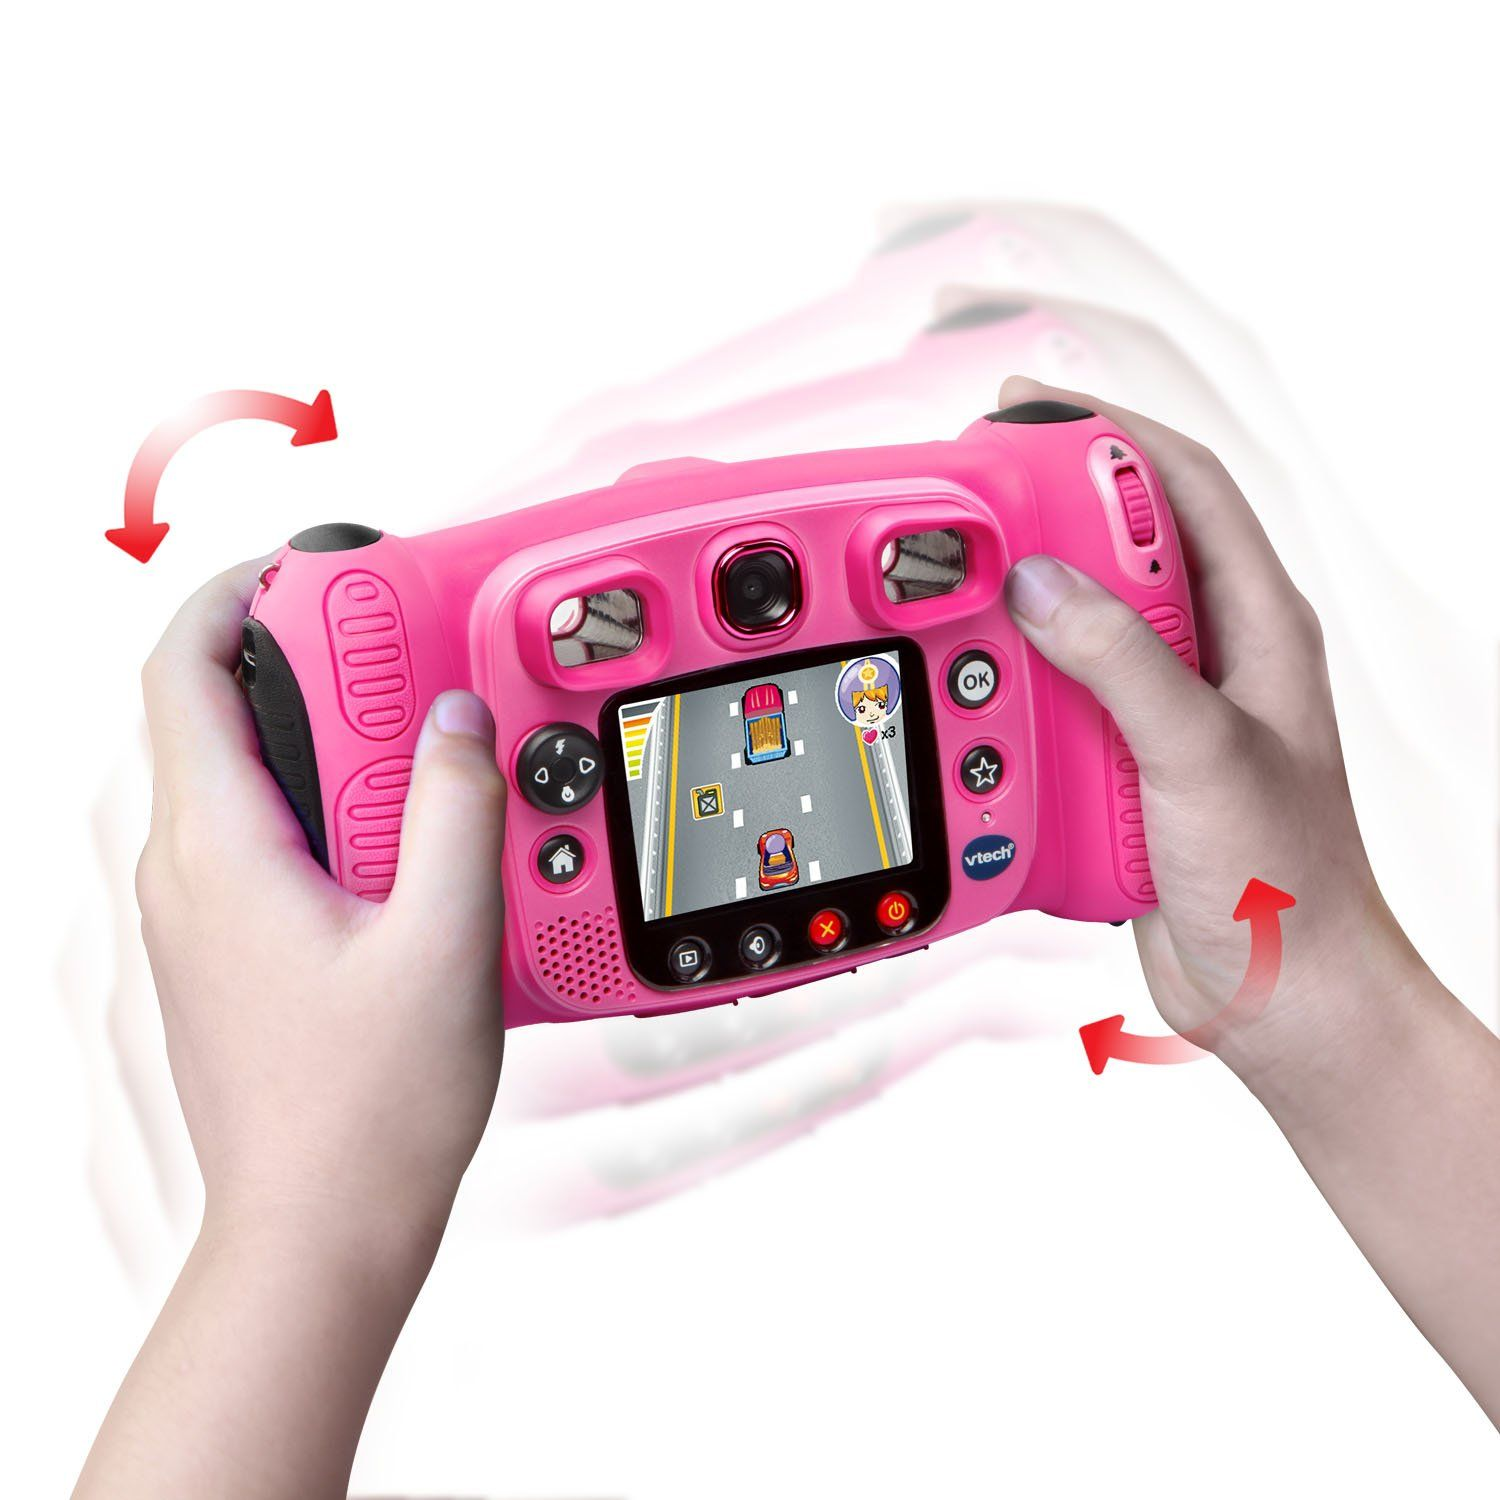 Vtech Kidizoom Duo 5 0 Deluxe Digital Selfie Camera With Mp3 Player And Headphones Pink Online Exclusive You Can Get More Detai Vtech Action Cam Cool Toys